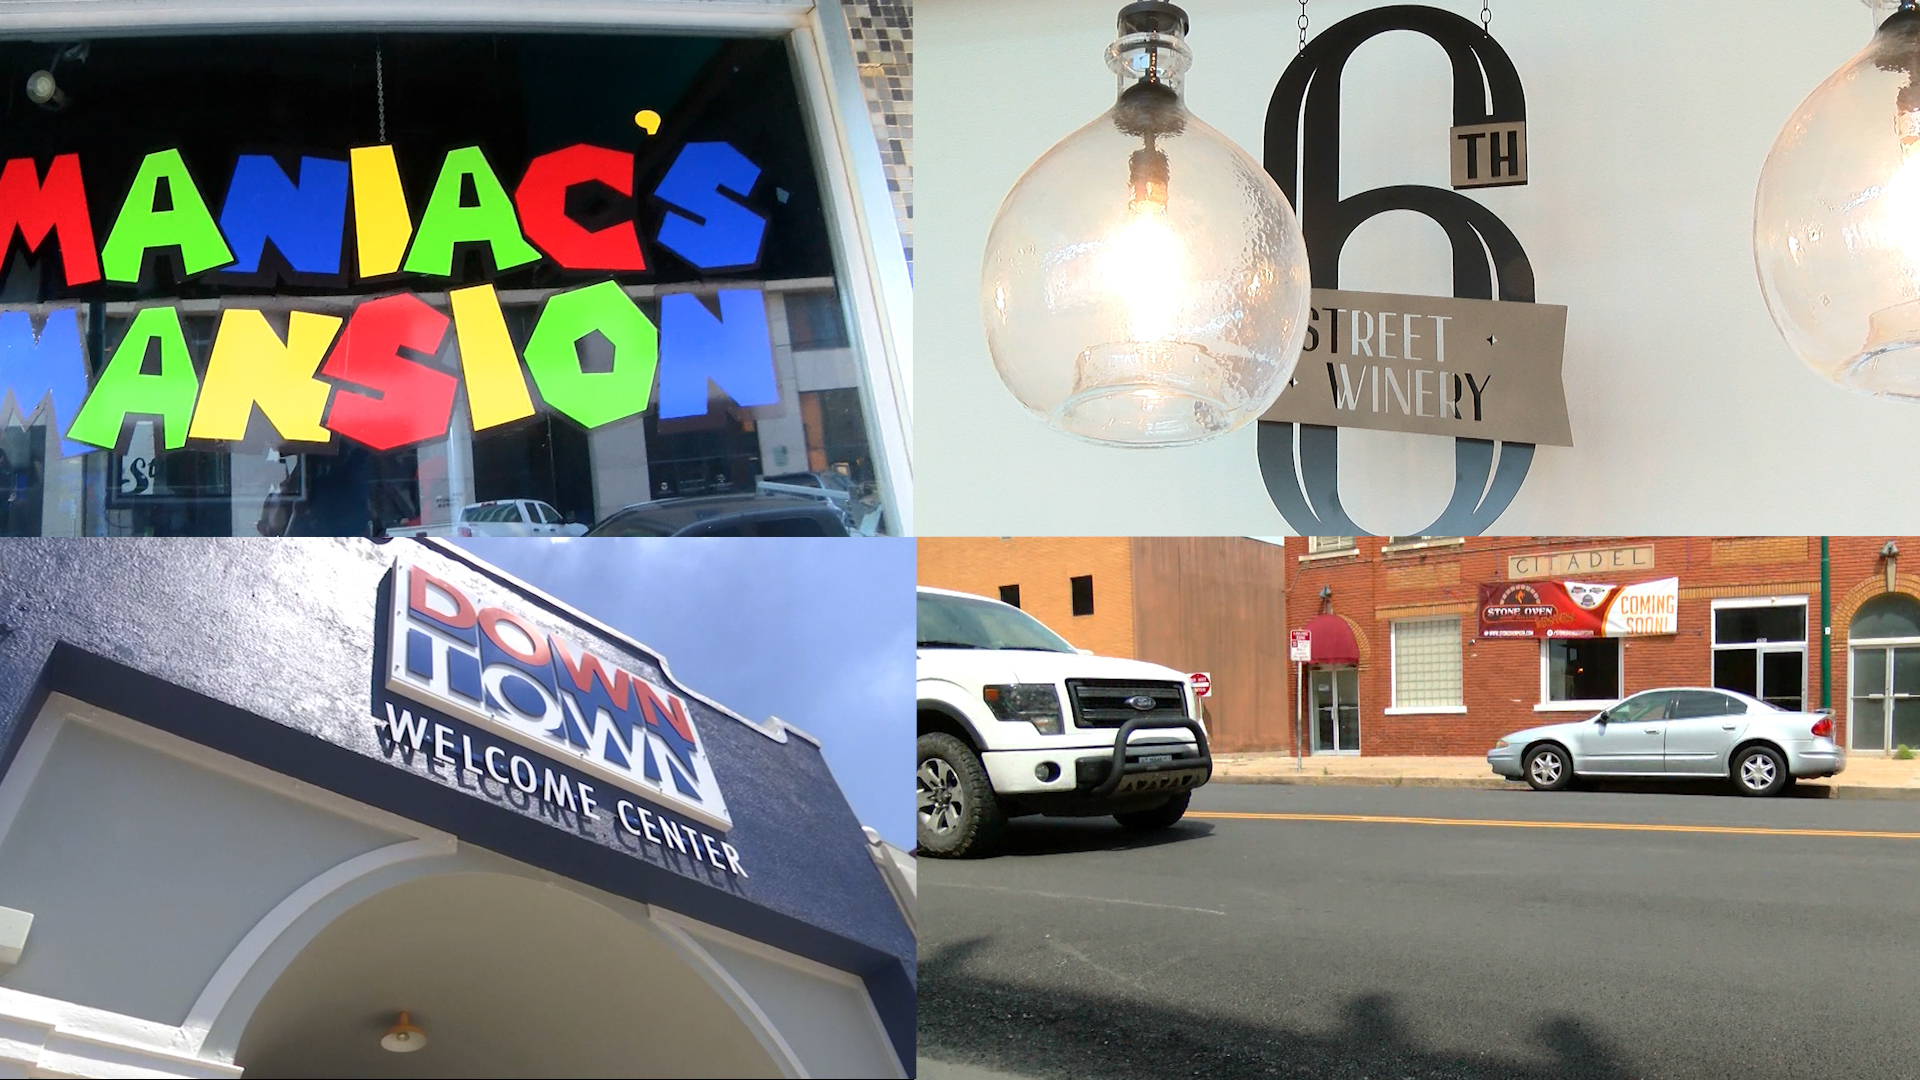 As the year comes to an end we are taking a look at the tremendous growth we've seen in downtown Wichita Falls all of which has been toward a revitalized downtown